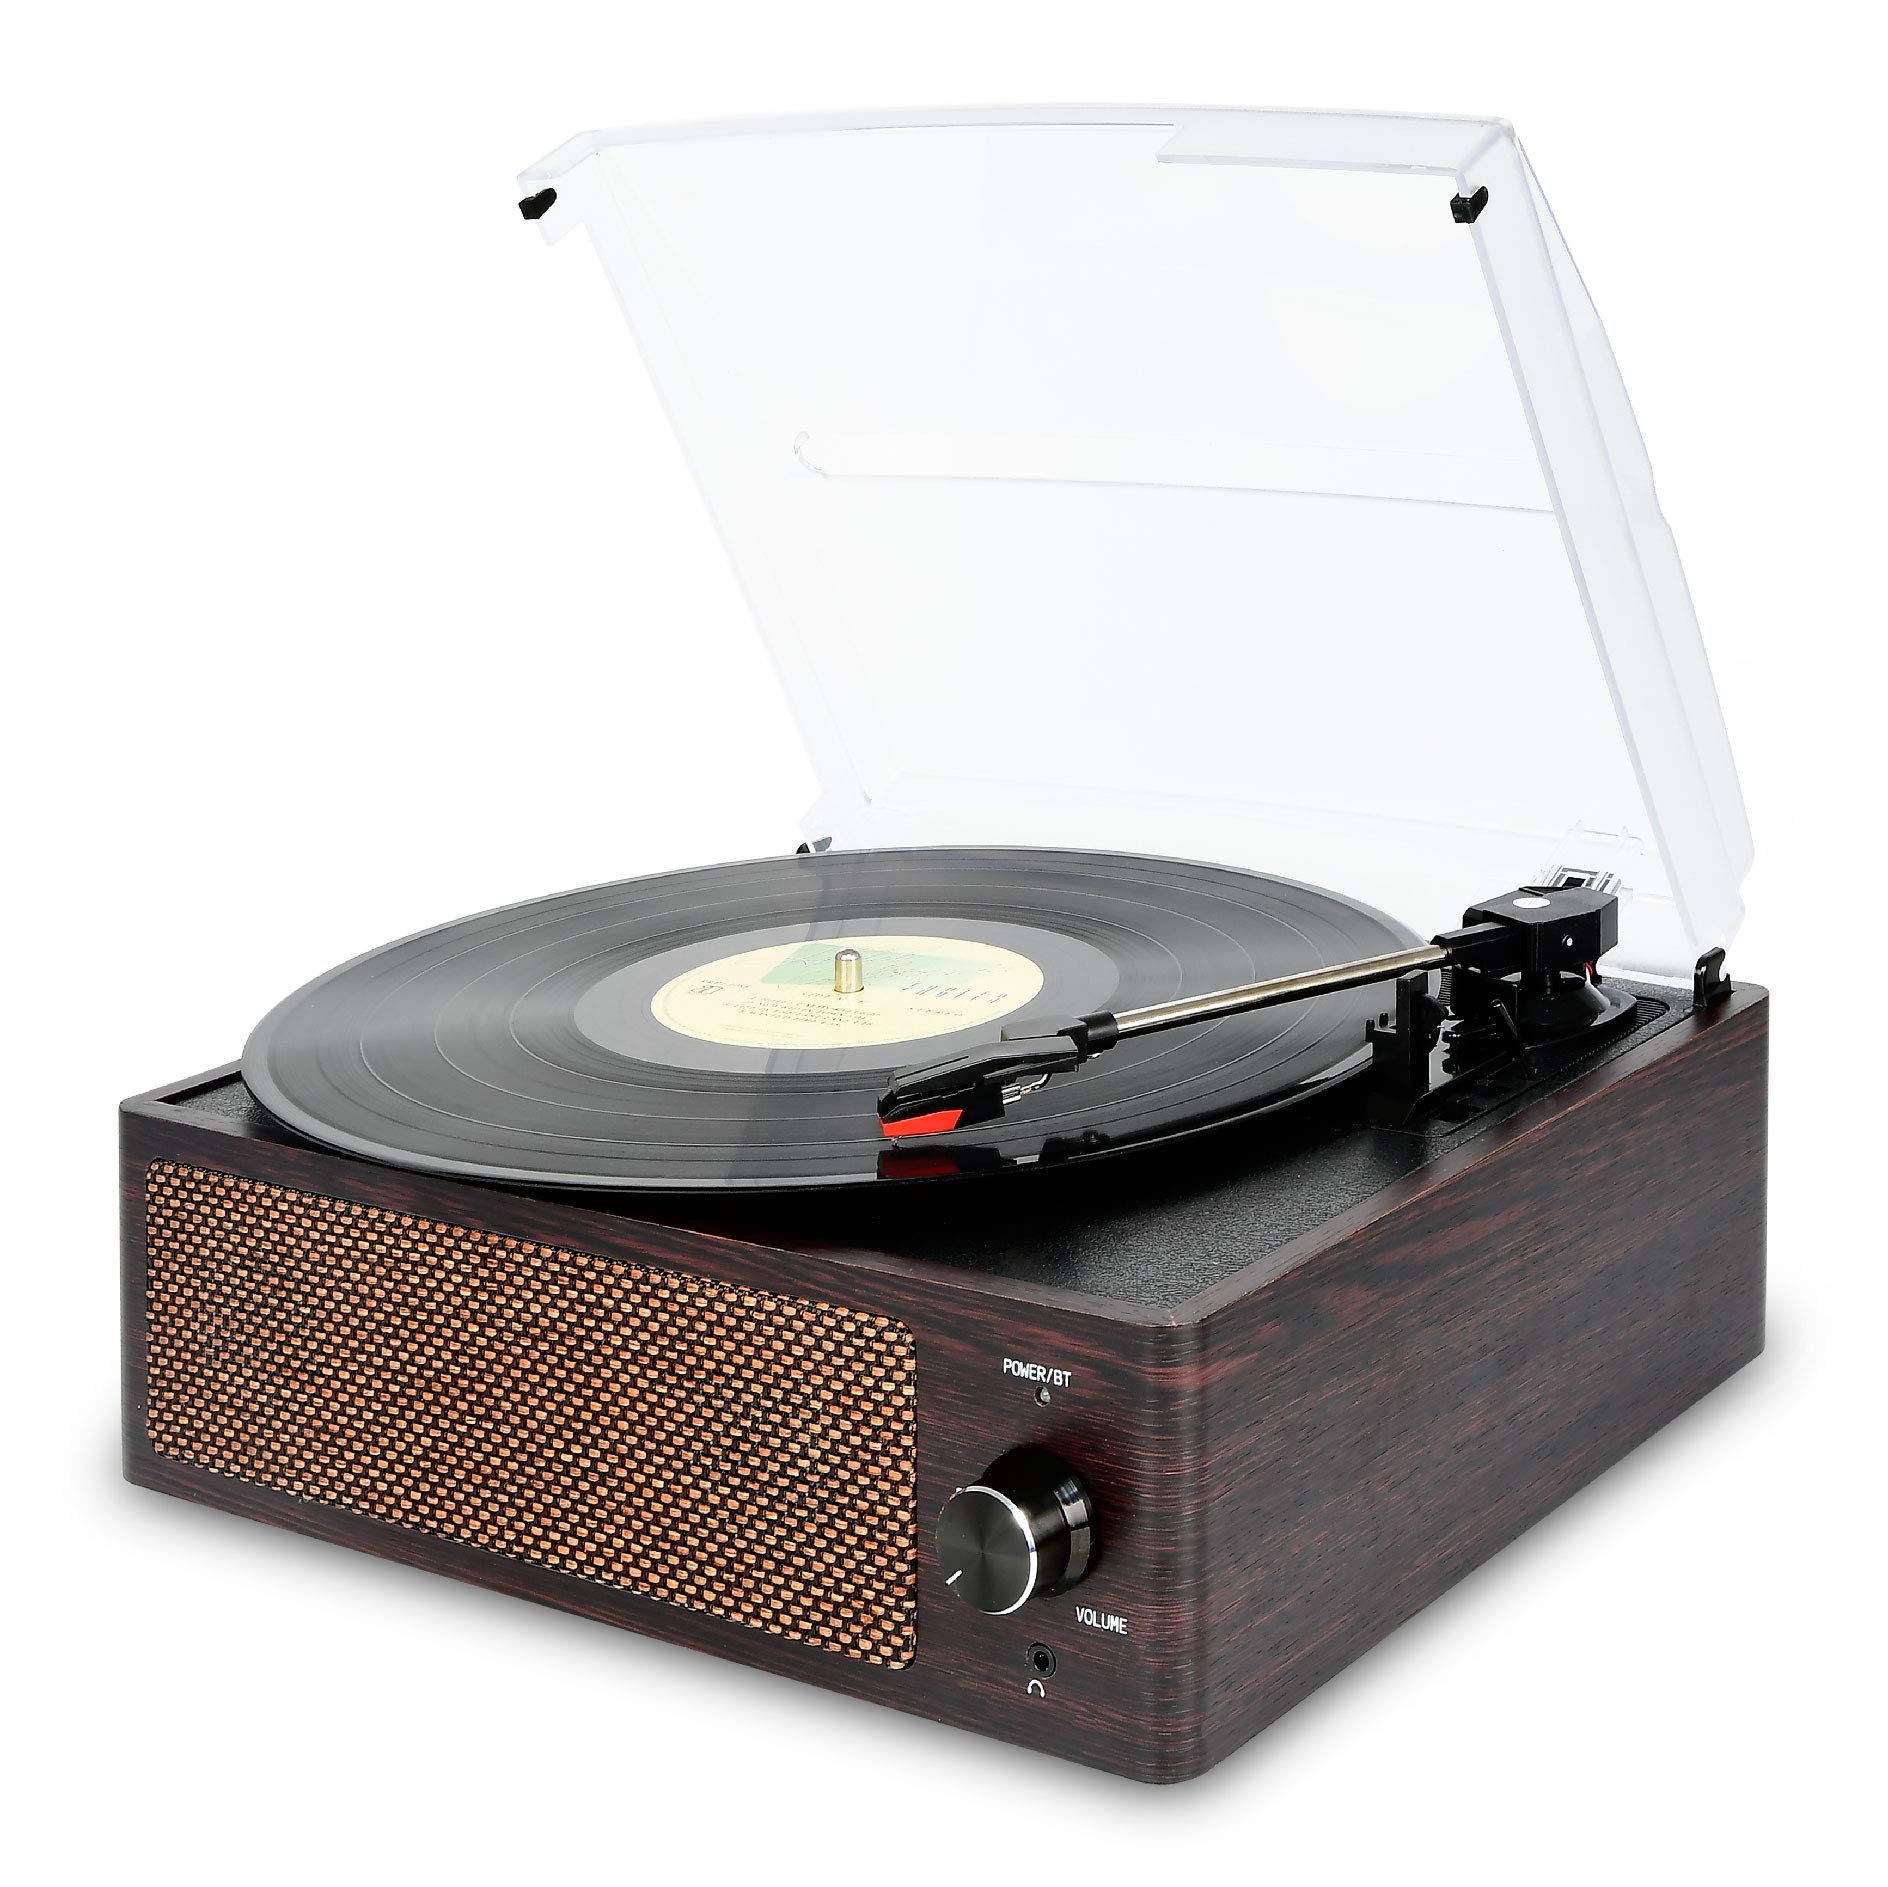 Bluetooth Record Player Belt-Driven 3-Speed Turntable, Vintage Vinyl Record Players Built-in Stereo Speakers, with Headphone Jack/ Aux Input/ RCA Line Out, Brown Wooden